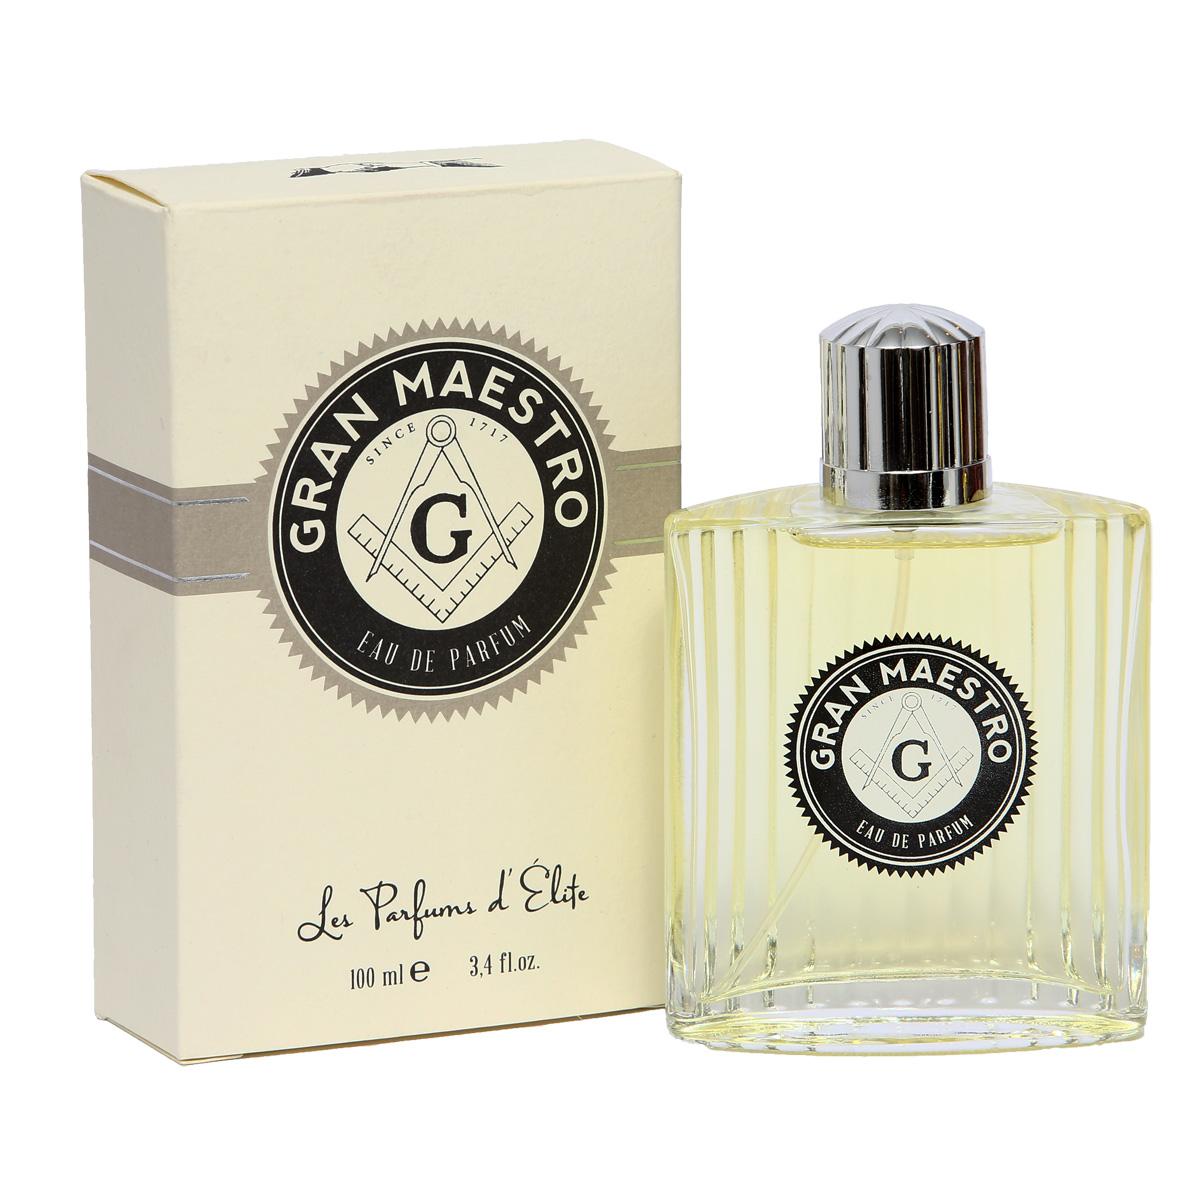 LES PARFUMS D ELITE Gran Maestro EDP 100 ml